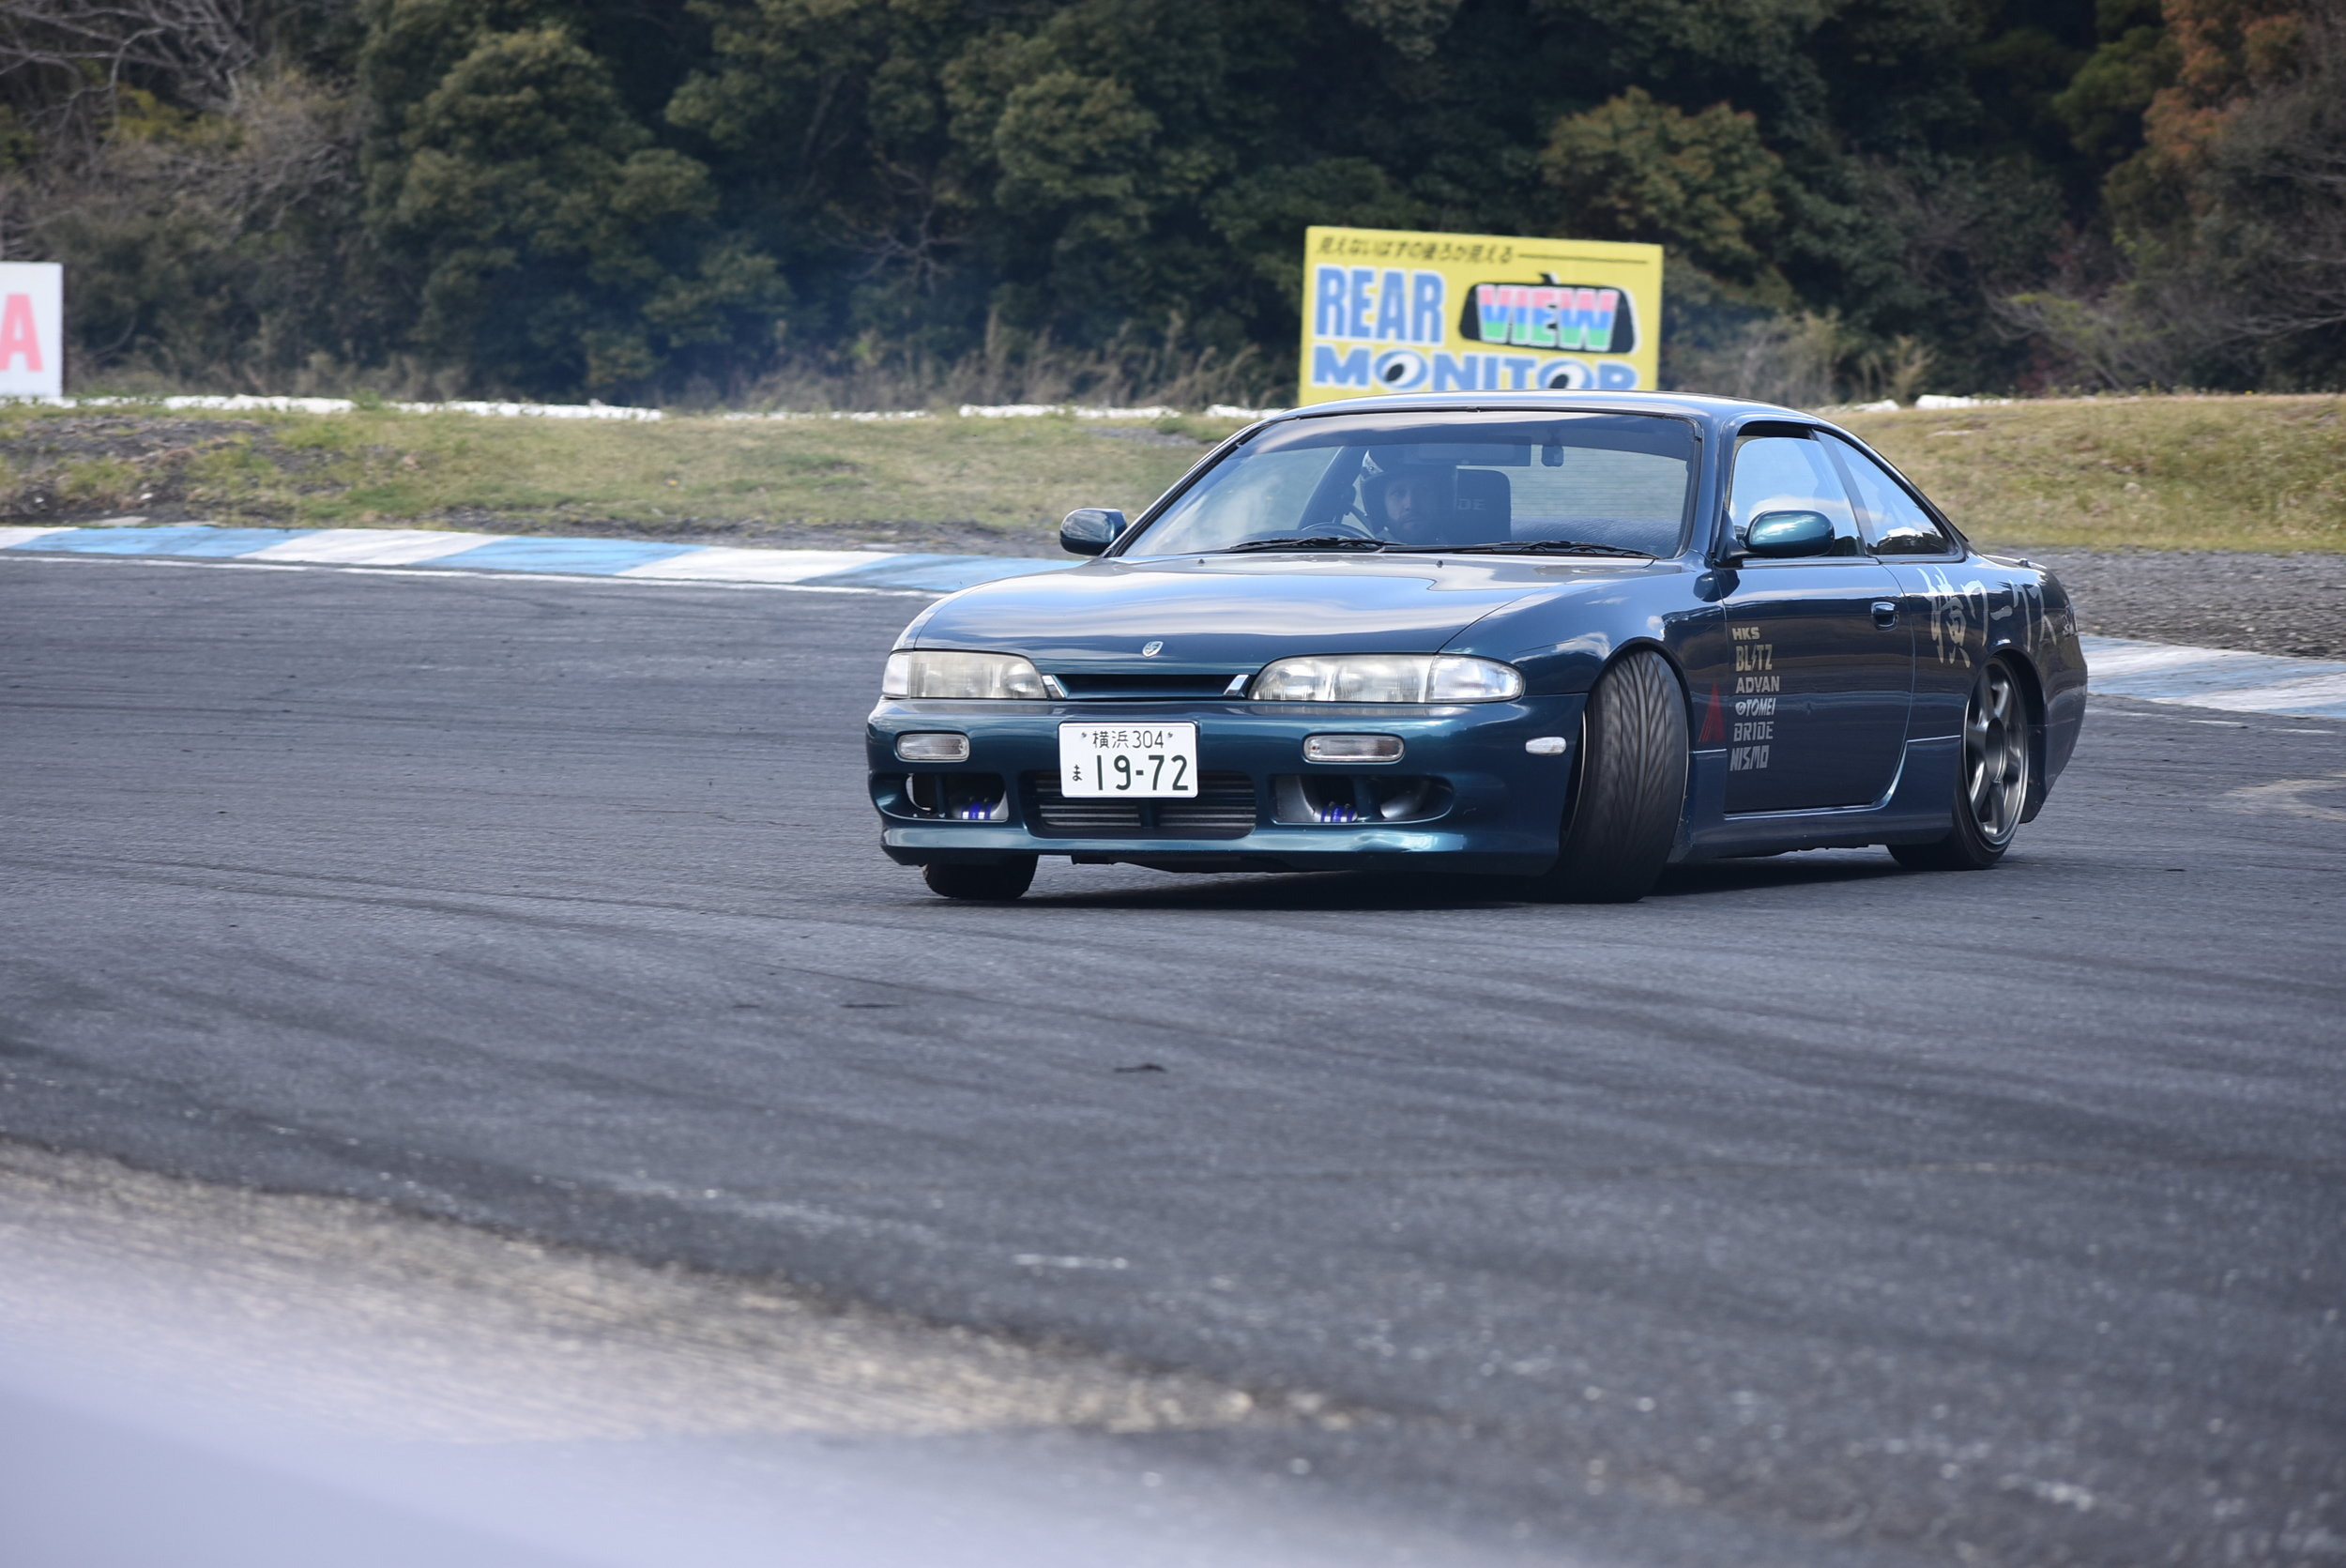 It was odd to see another American at a random track day, but it was equally as awesome! He was from Texas and had been living in Japan for quite some time. His style with his S14 was spot on. Big fan of all the AVS wheels, and matching drift spares!